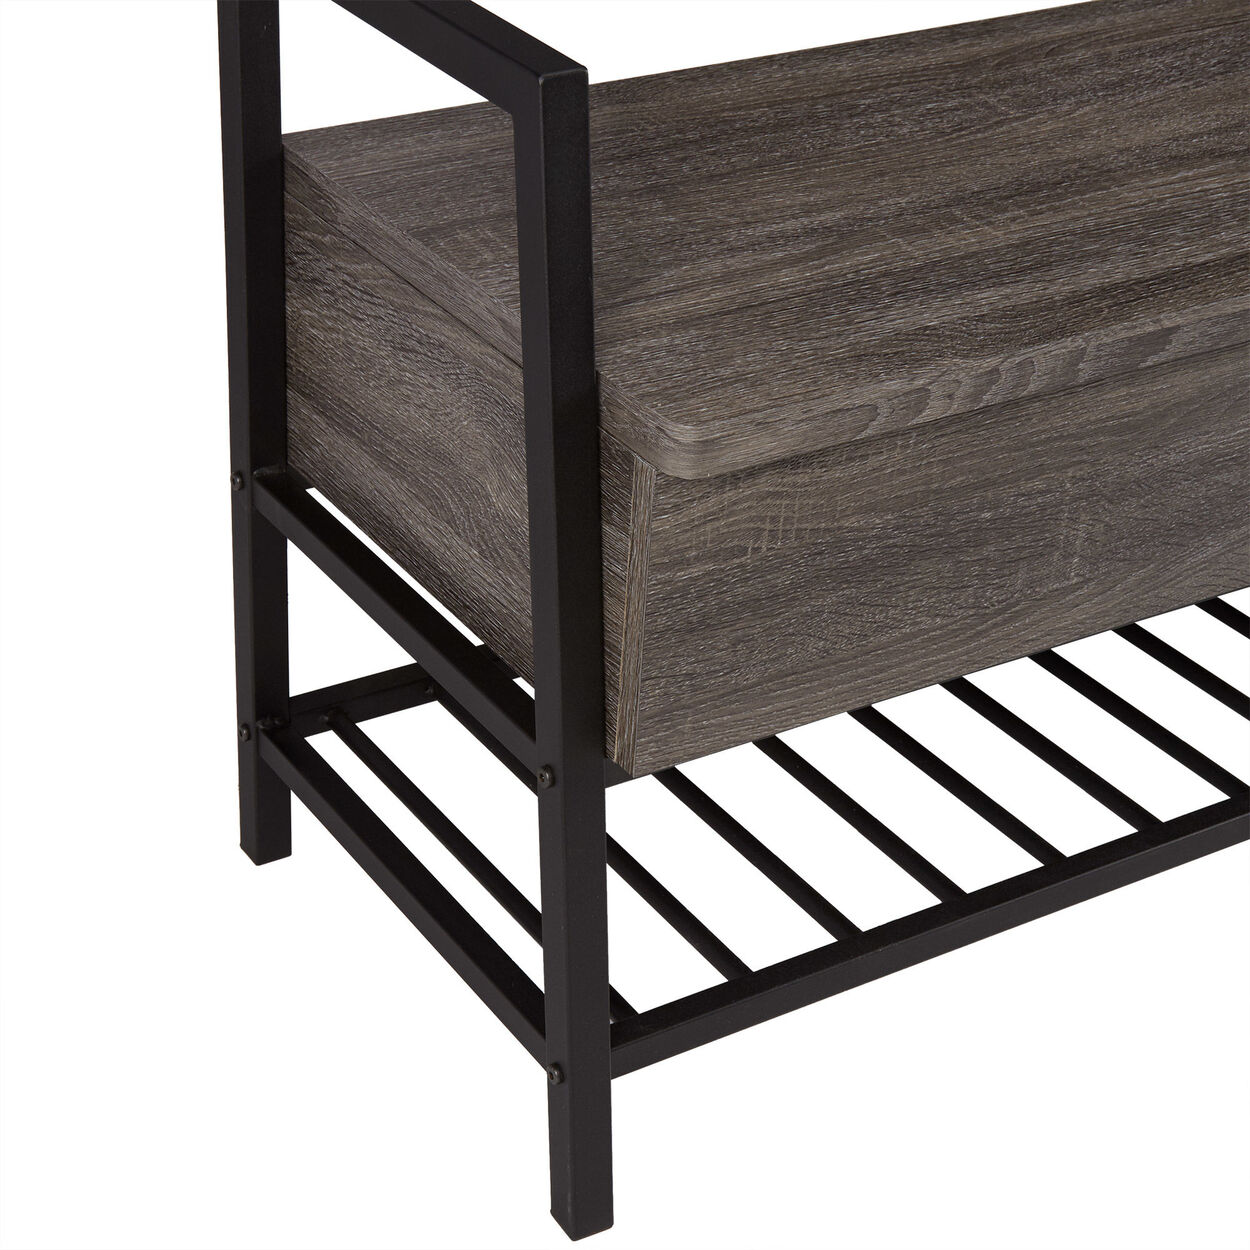 Wood Veneer Storage Bench with Matte Metal Base